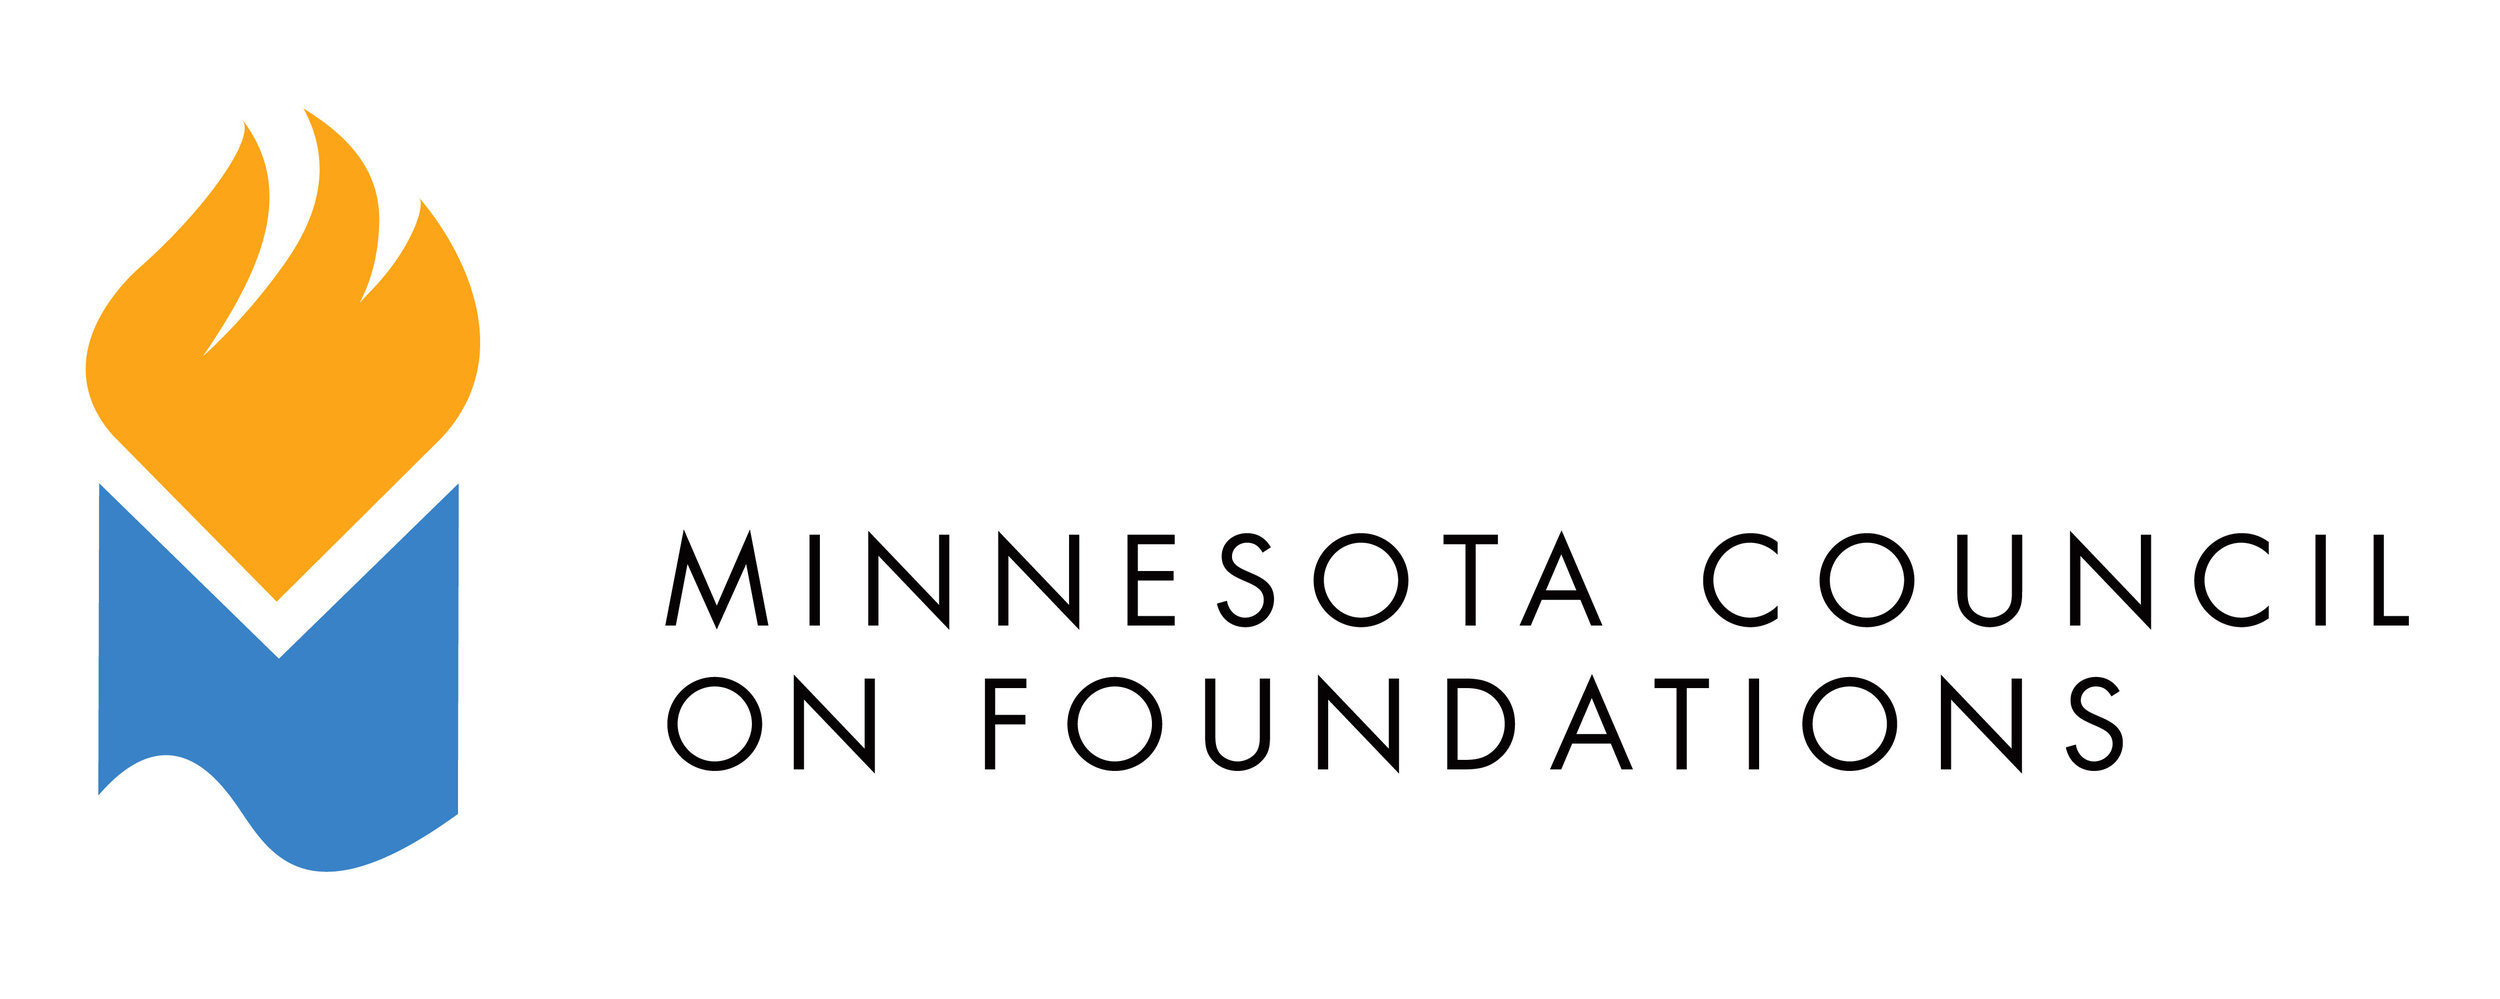 Minnesota Council On Foundations